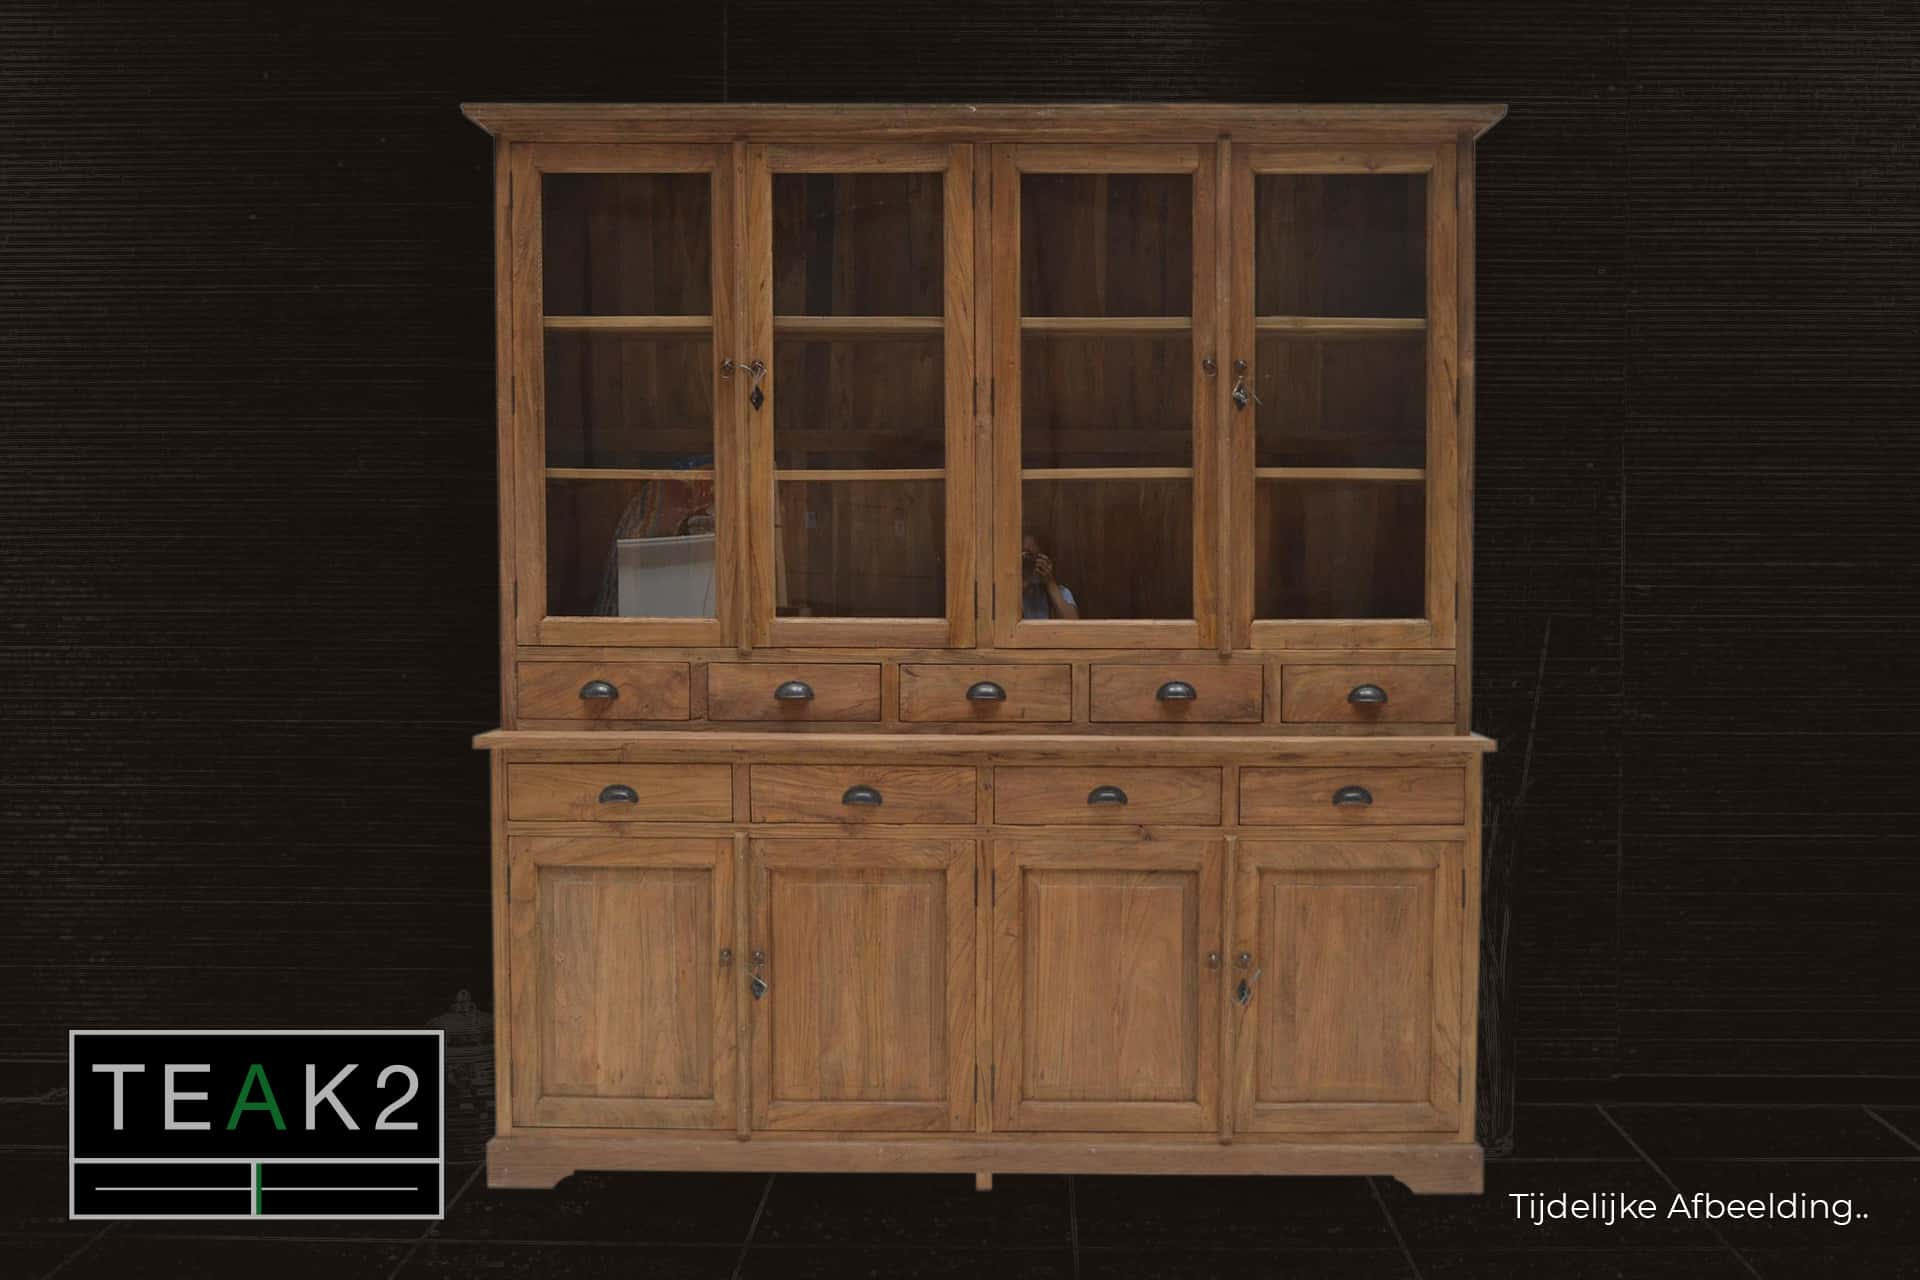 Teak Lebar 210L Old | wooden rural buffet cabinet with drawers in old teak. Teak display cabinet in rural style, drawers top and bottom cupboard - TEAK2.